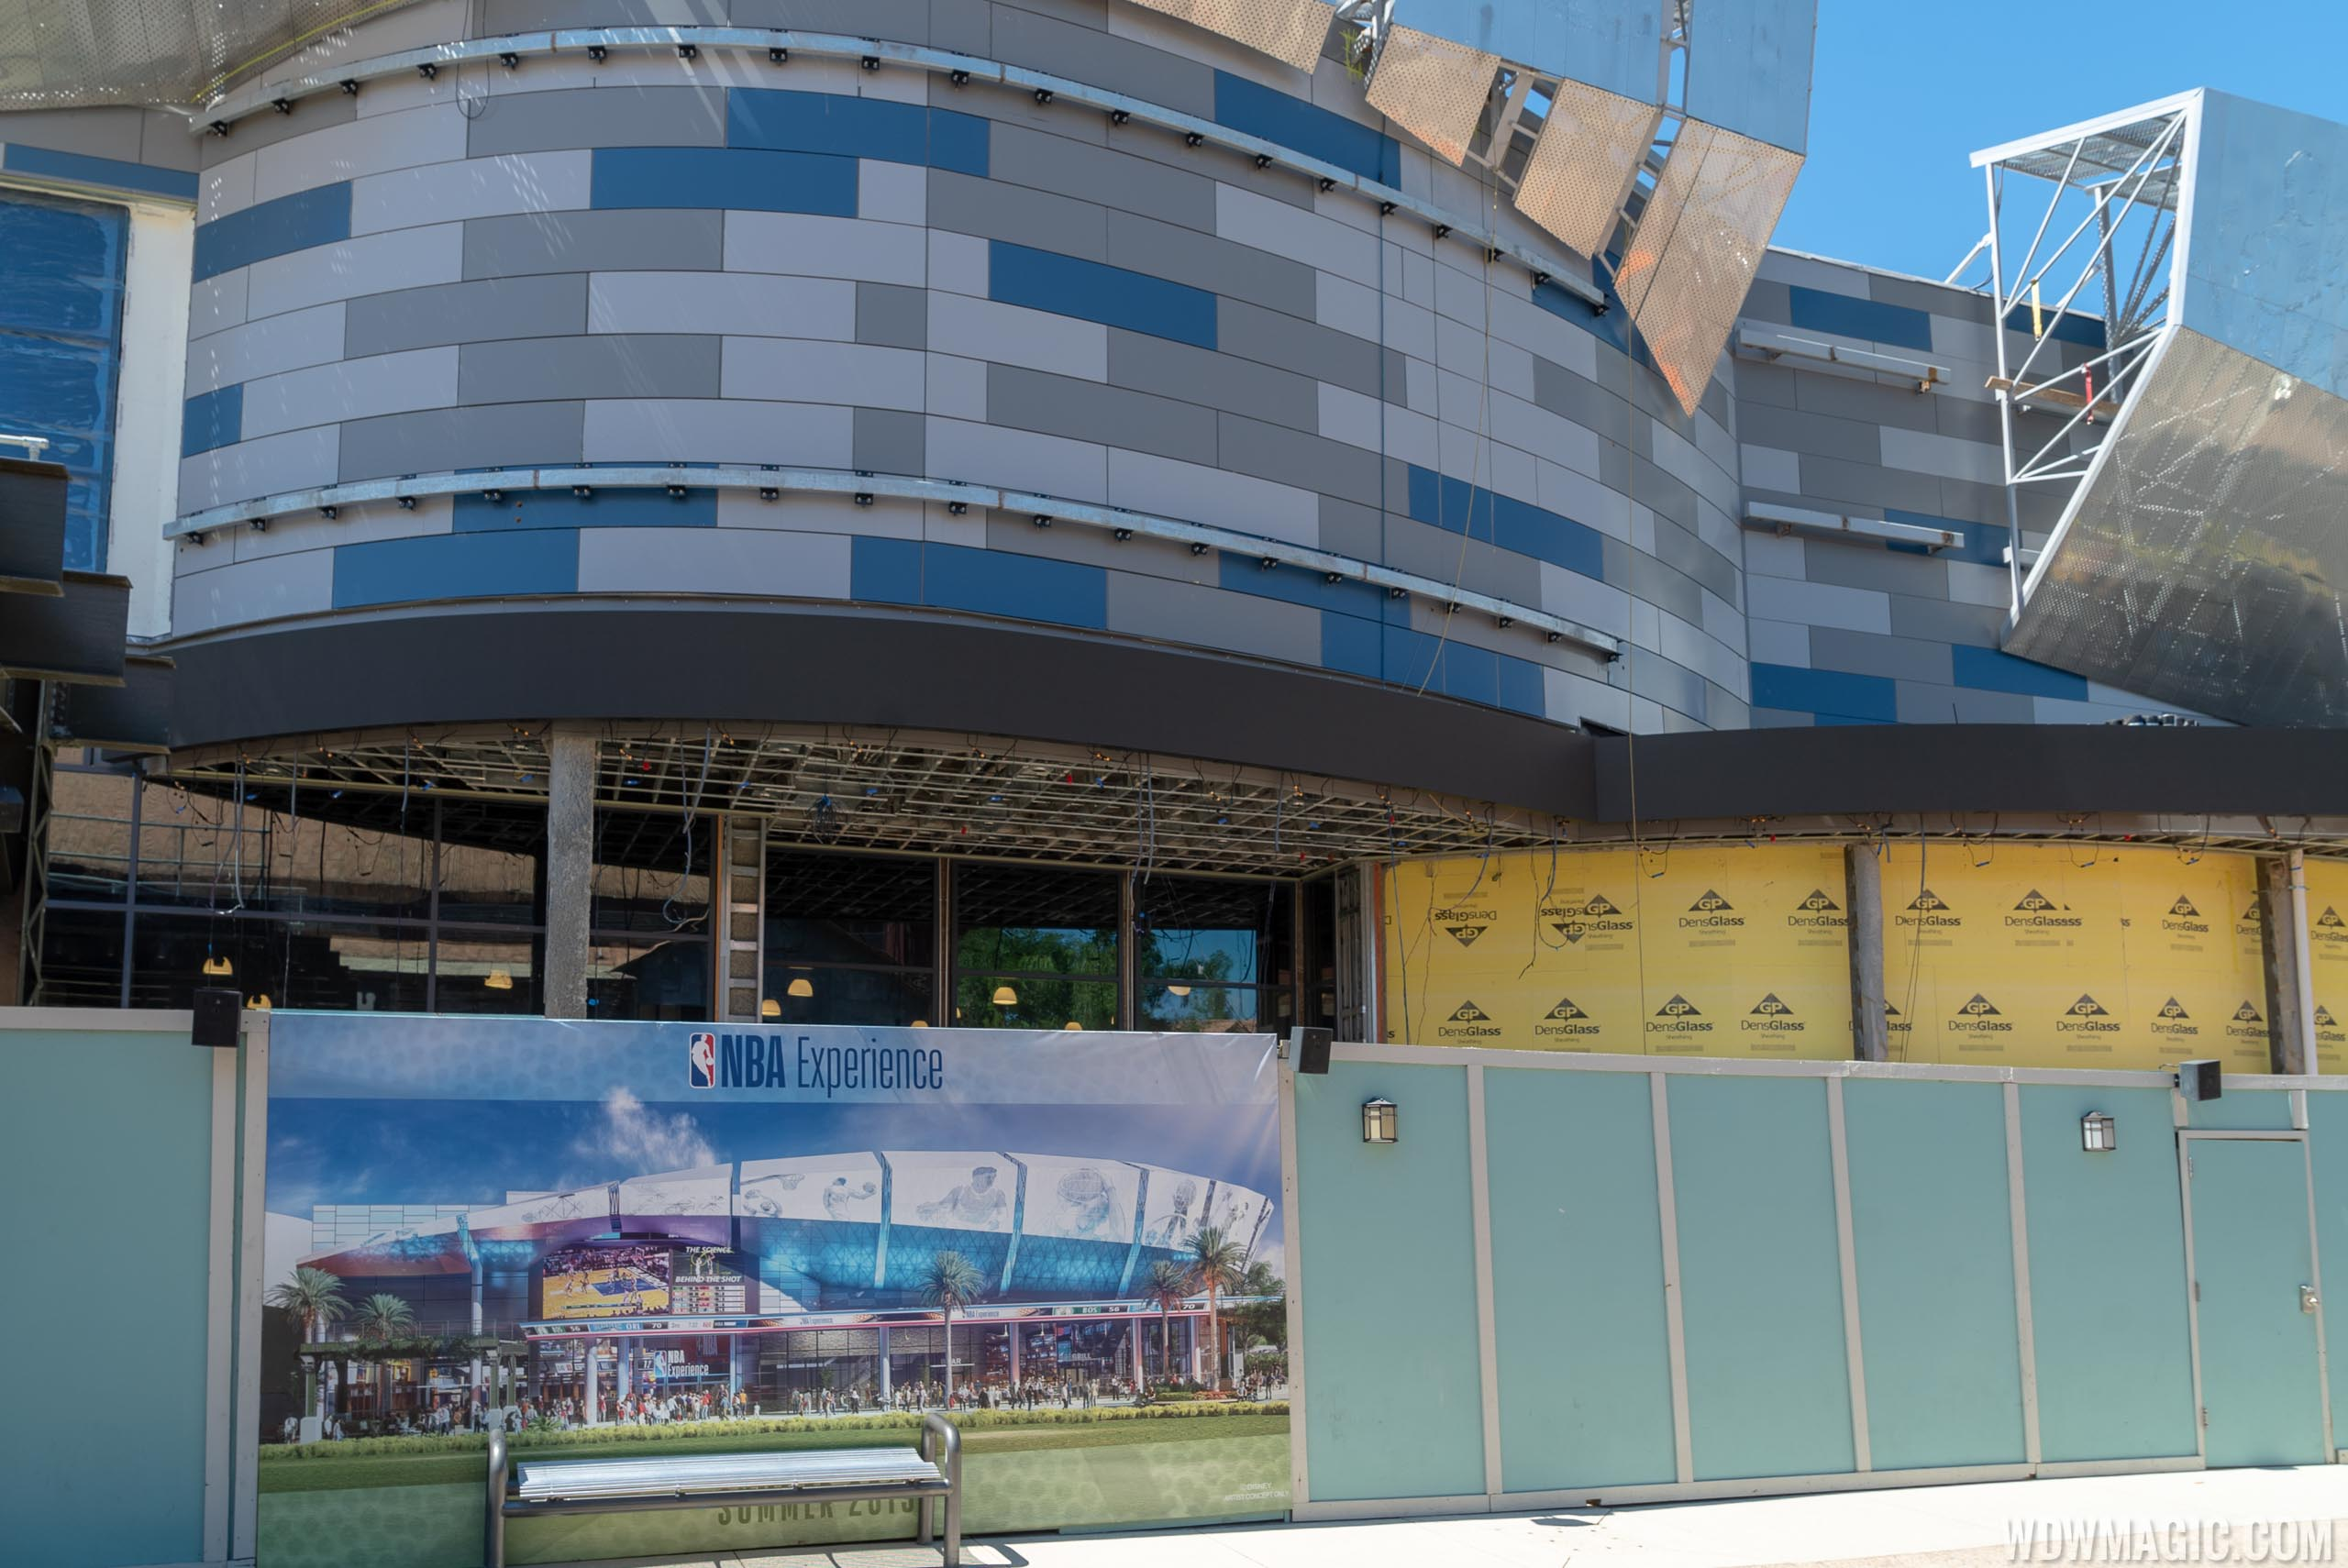 The NBA Experience and City Works construction - April 2019